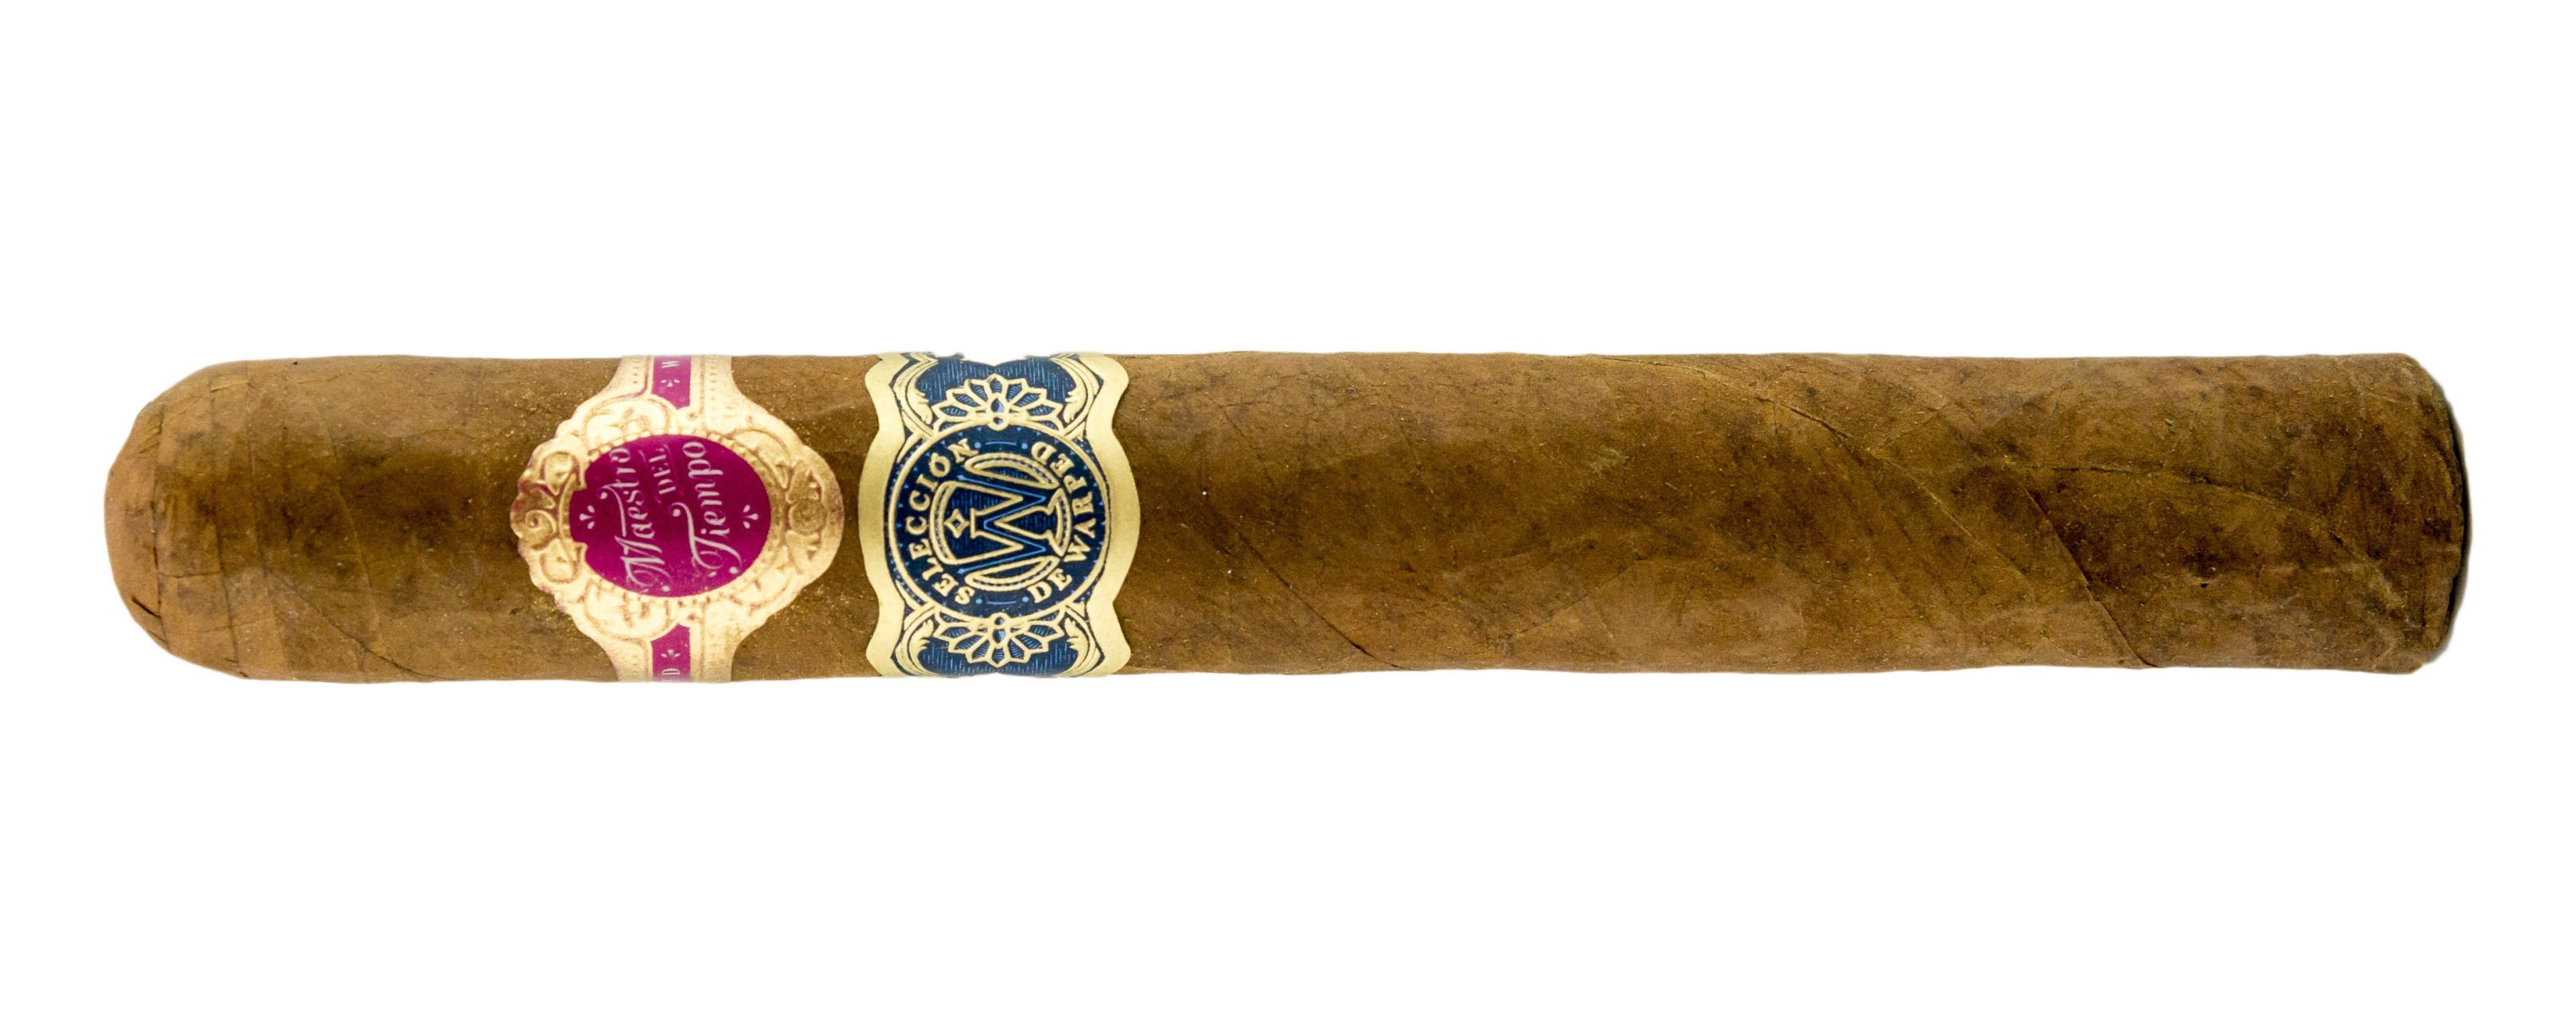 Top 25 Cigars – 2016